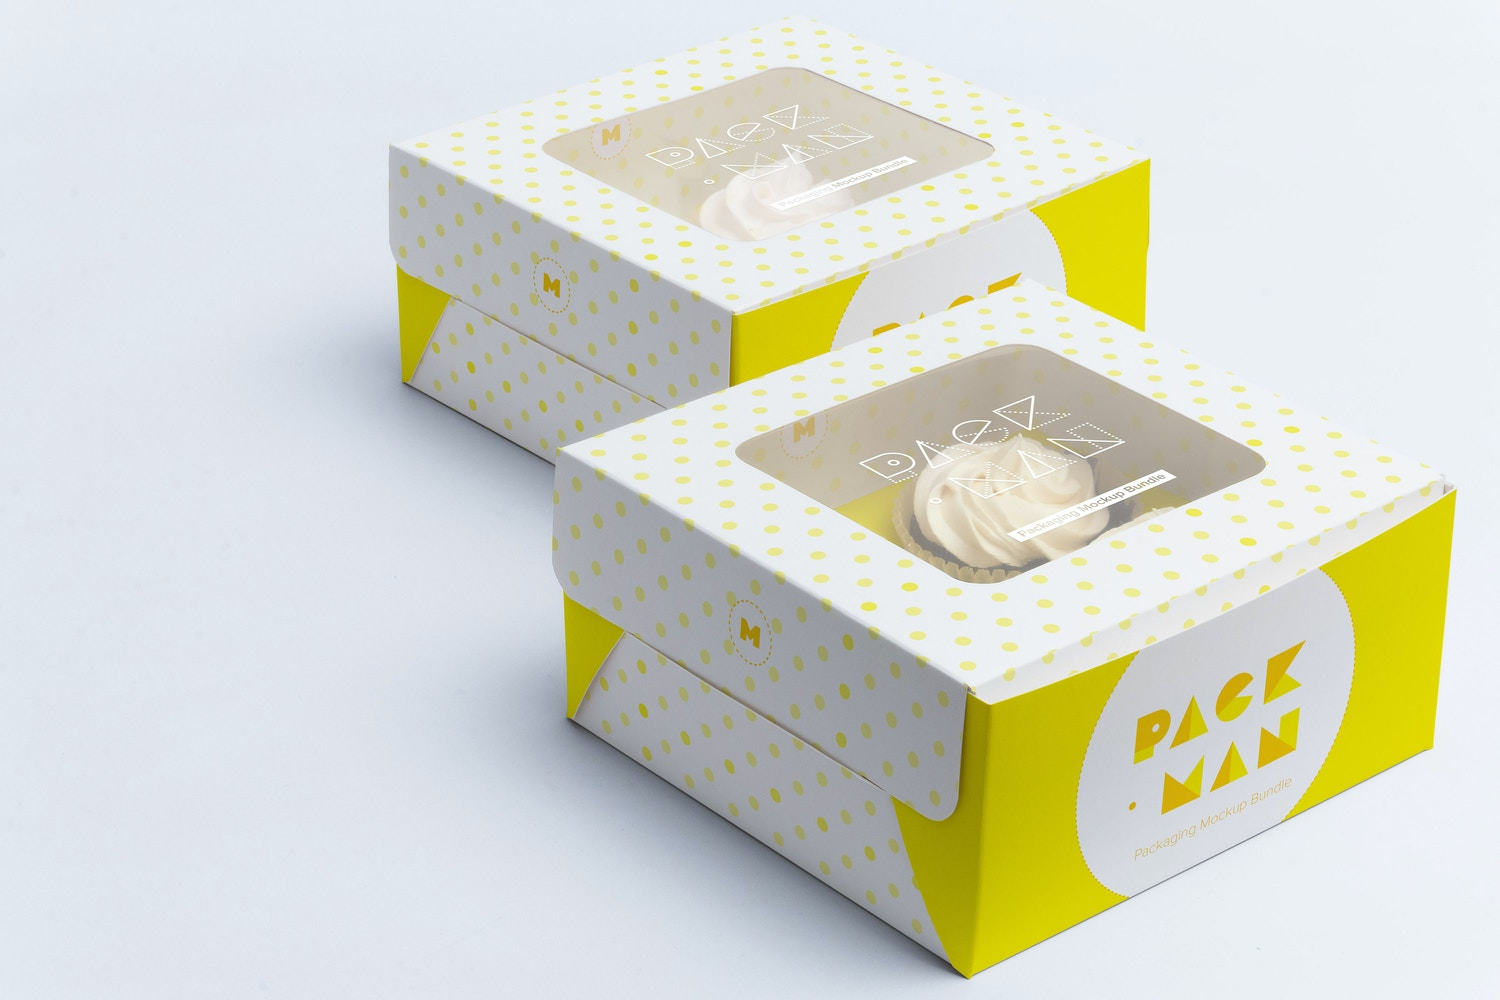 Four Cupcake Box Mockup 03 by Ktyellow  on Original Mockups